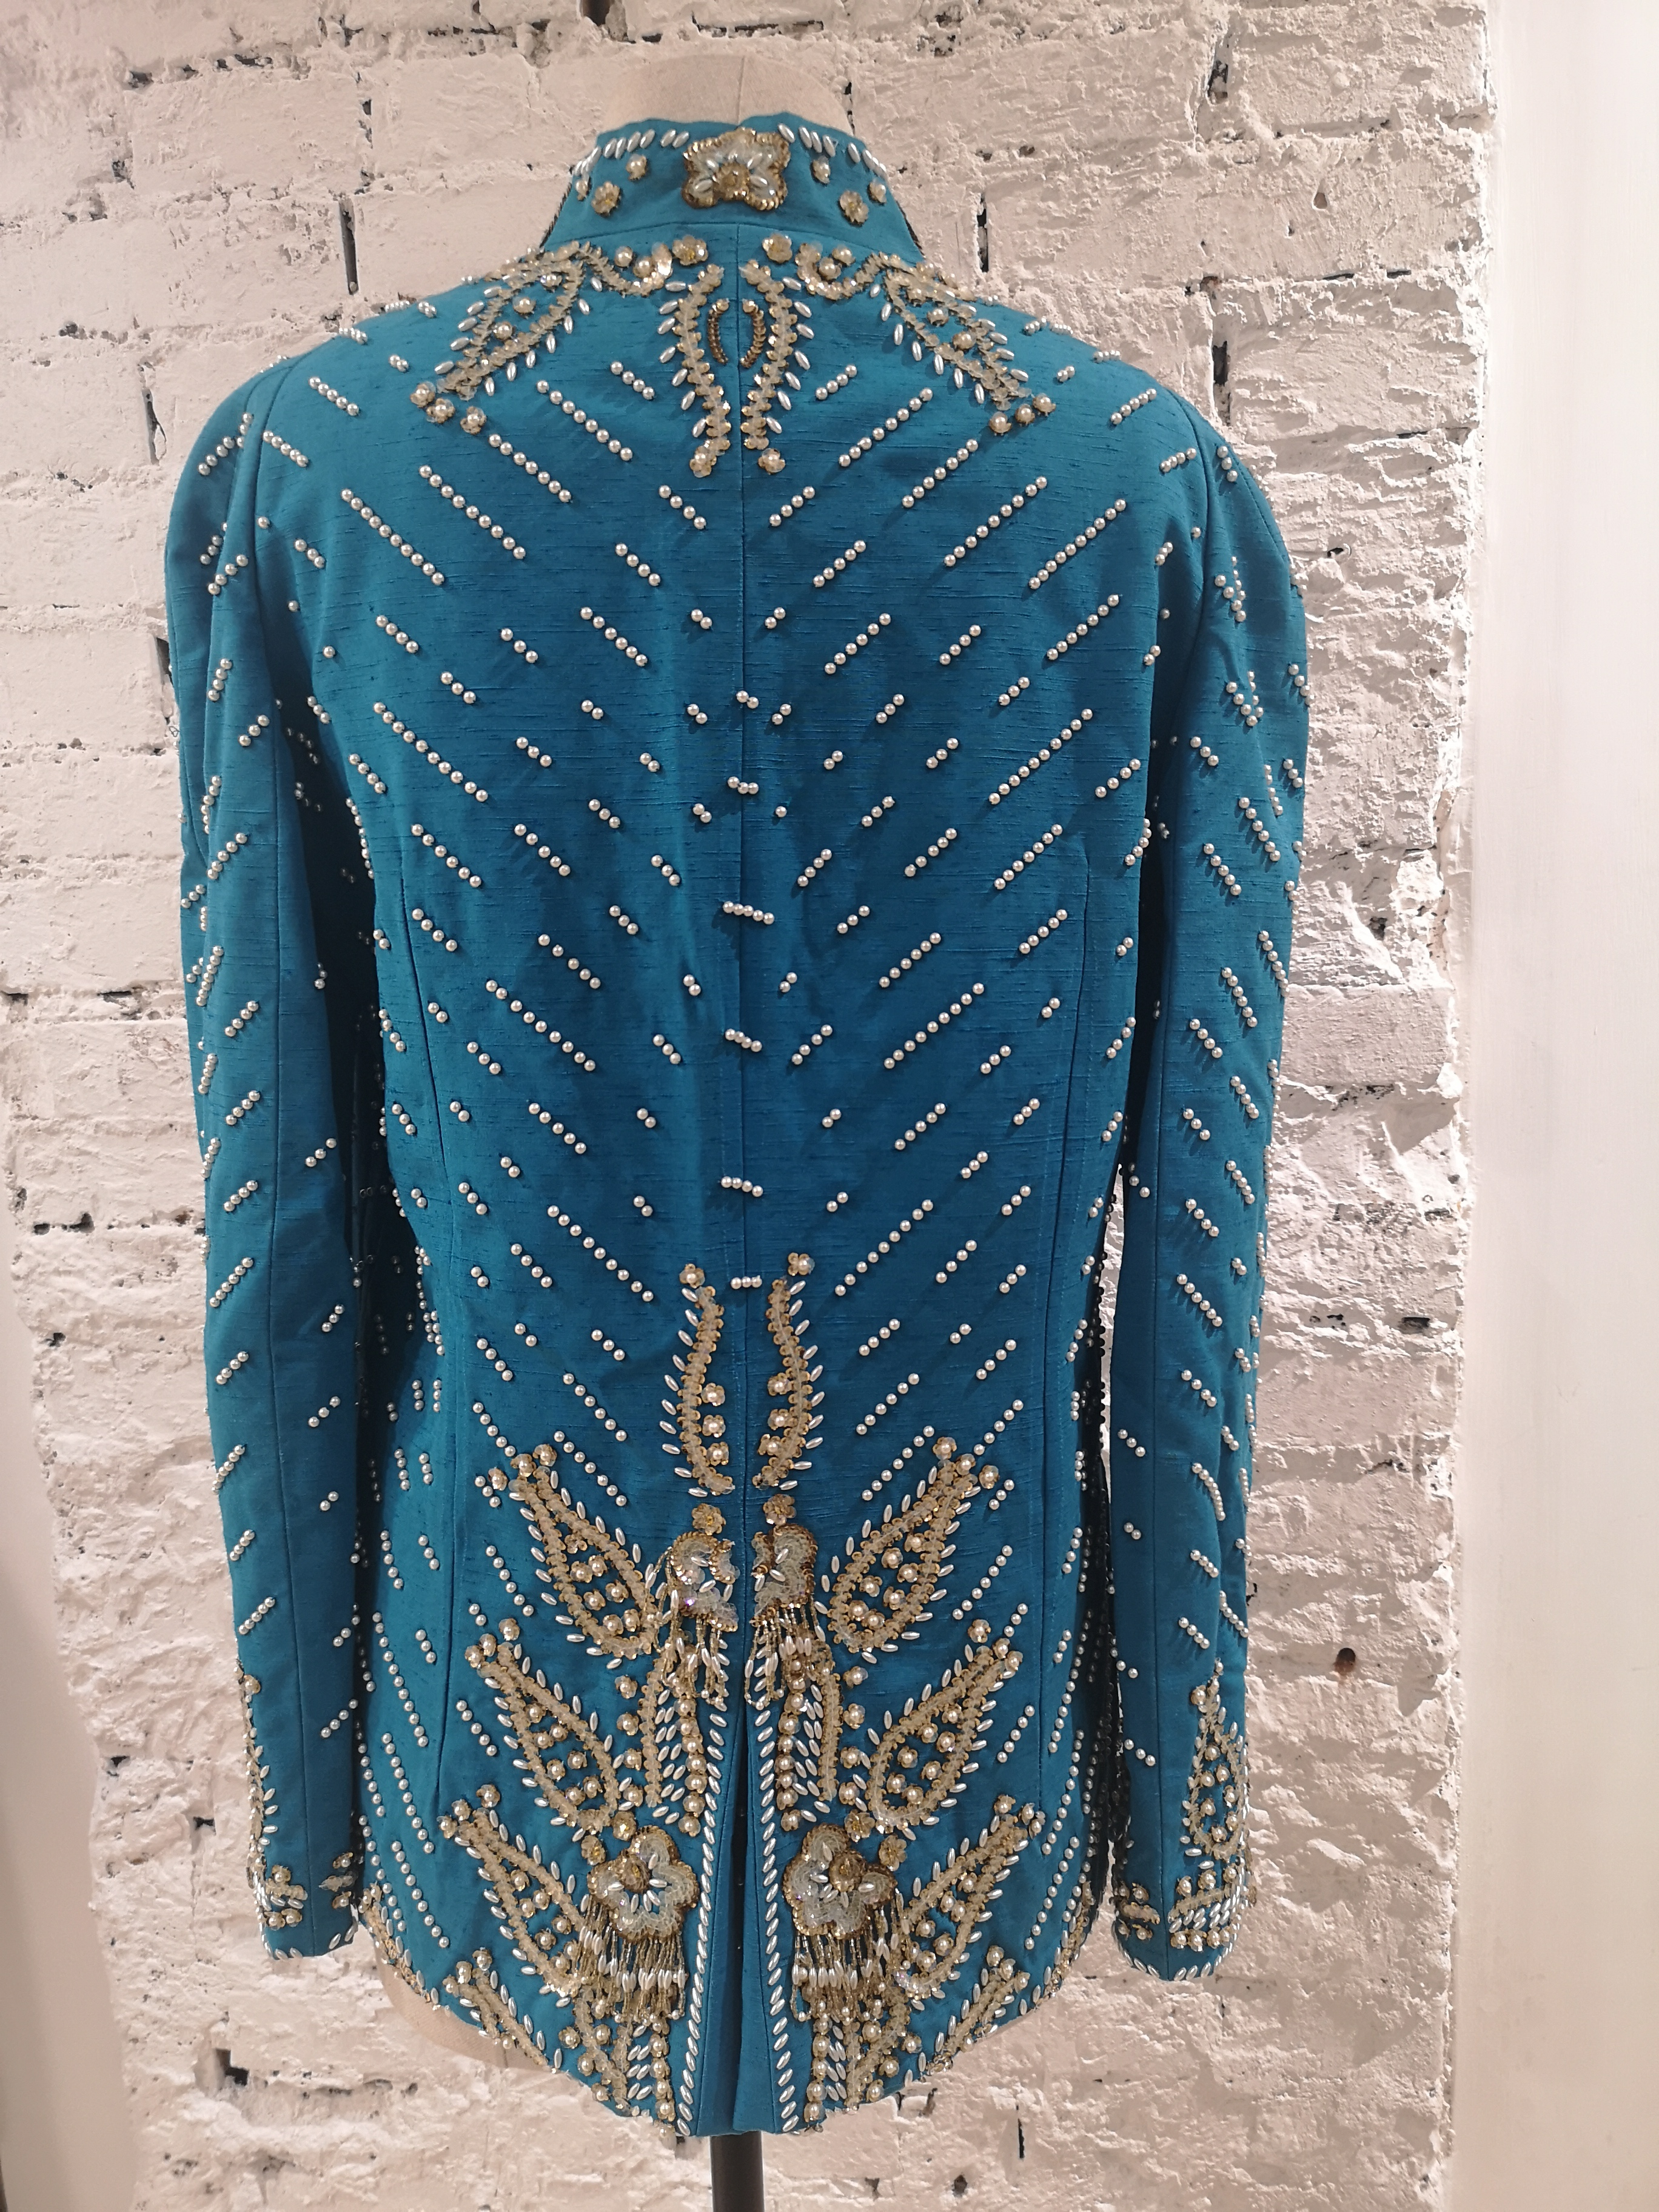 Christian Dior turquoise pearls beads sequins jacket Christian Dior | Giacca | AT020XASDD450ECSPERLE